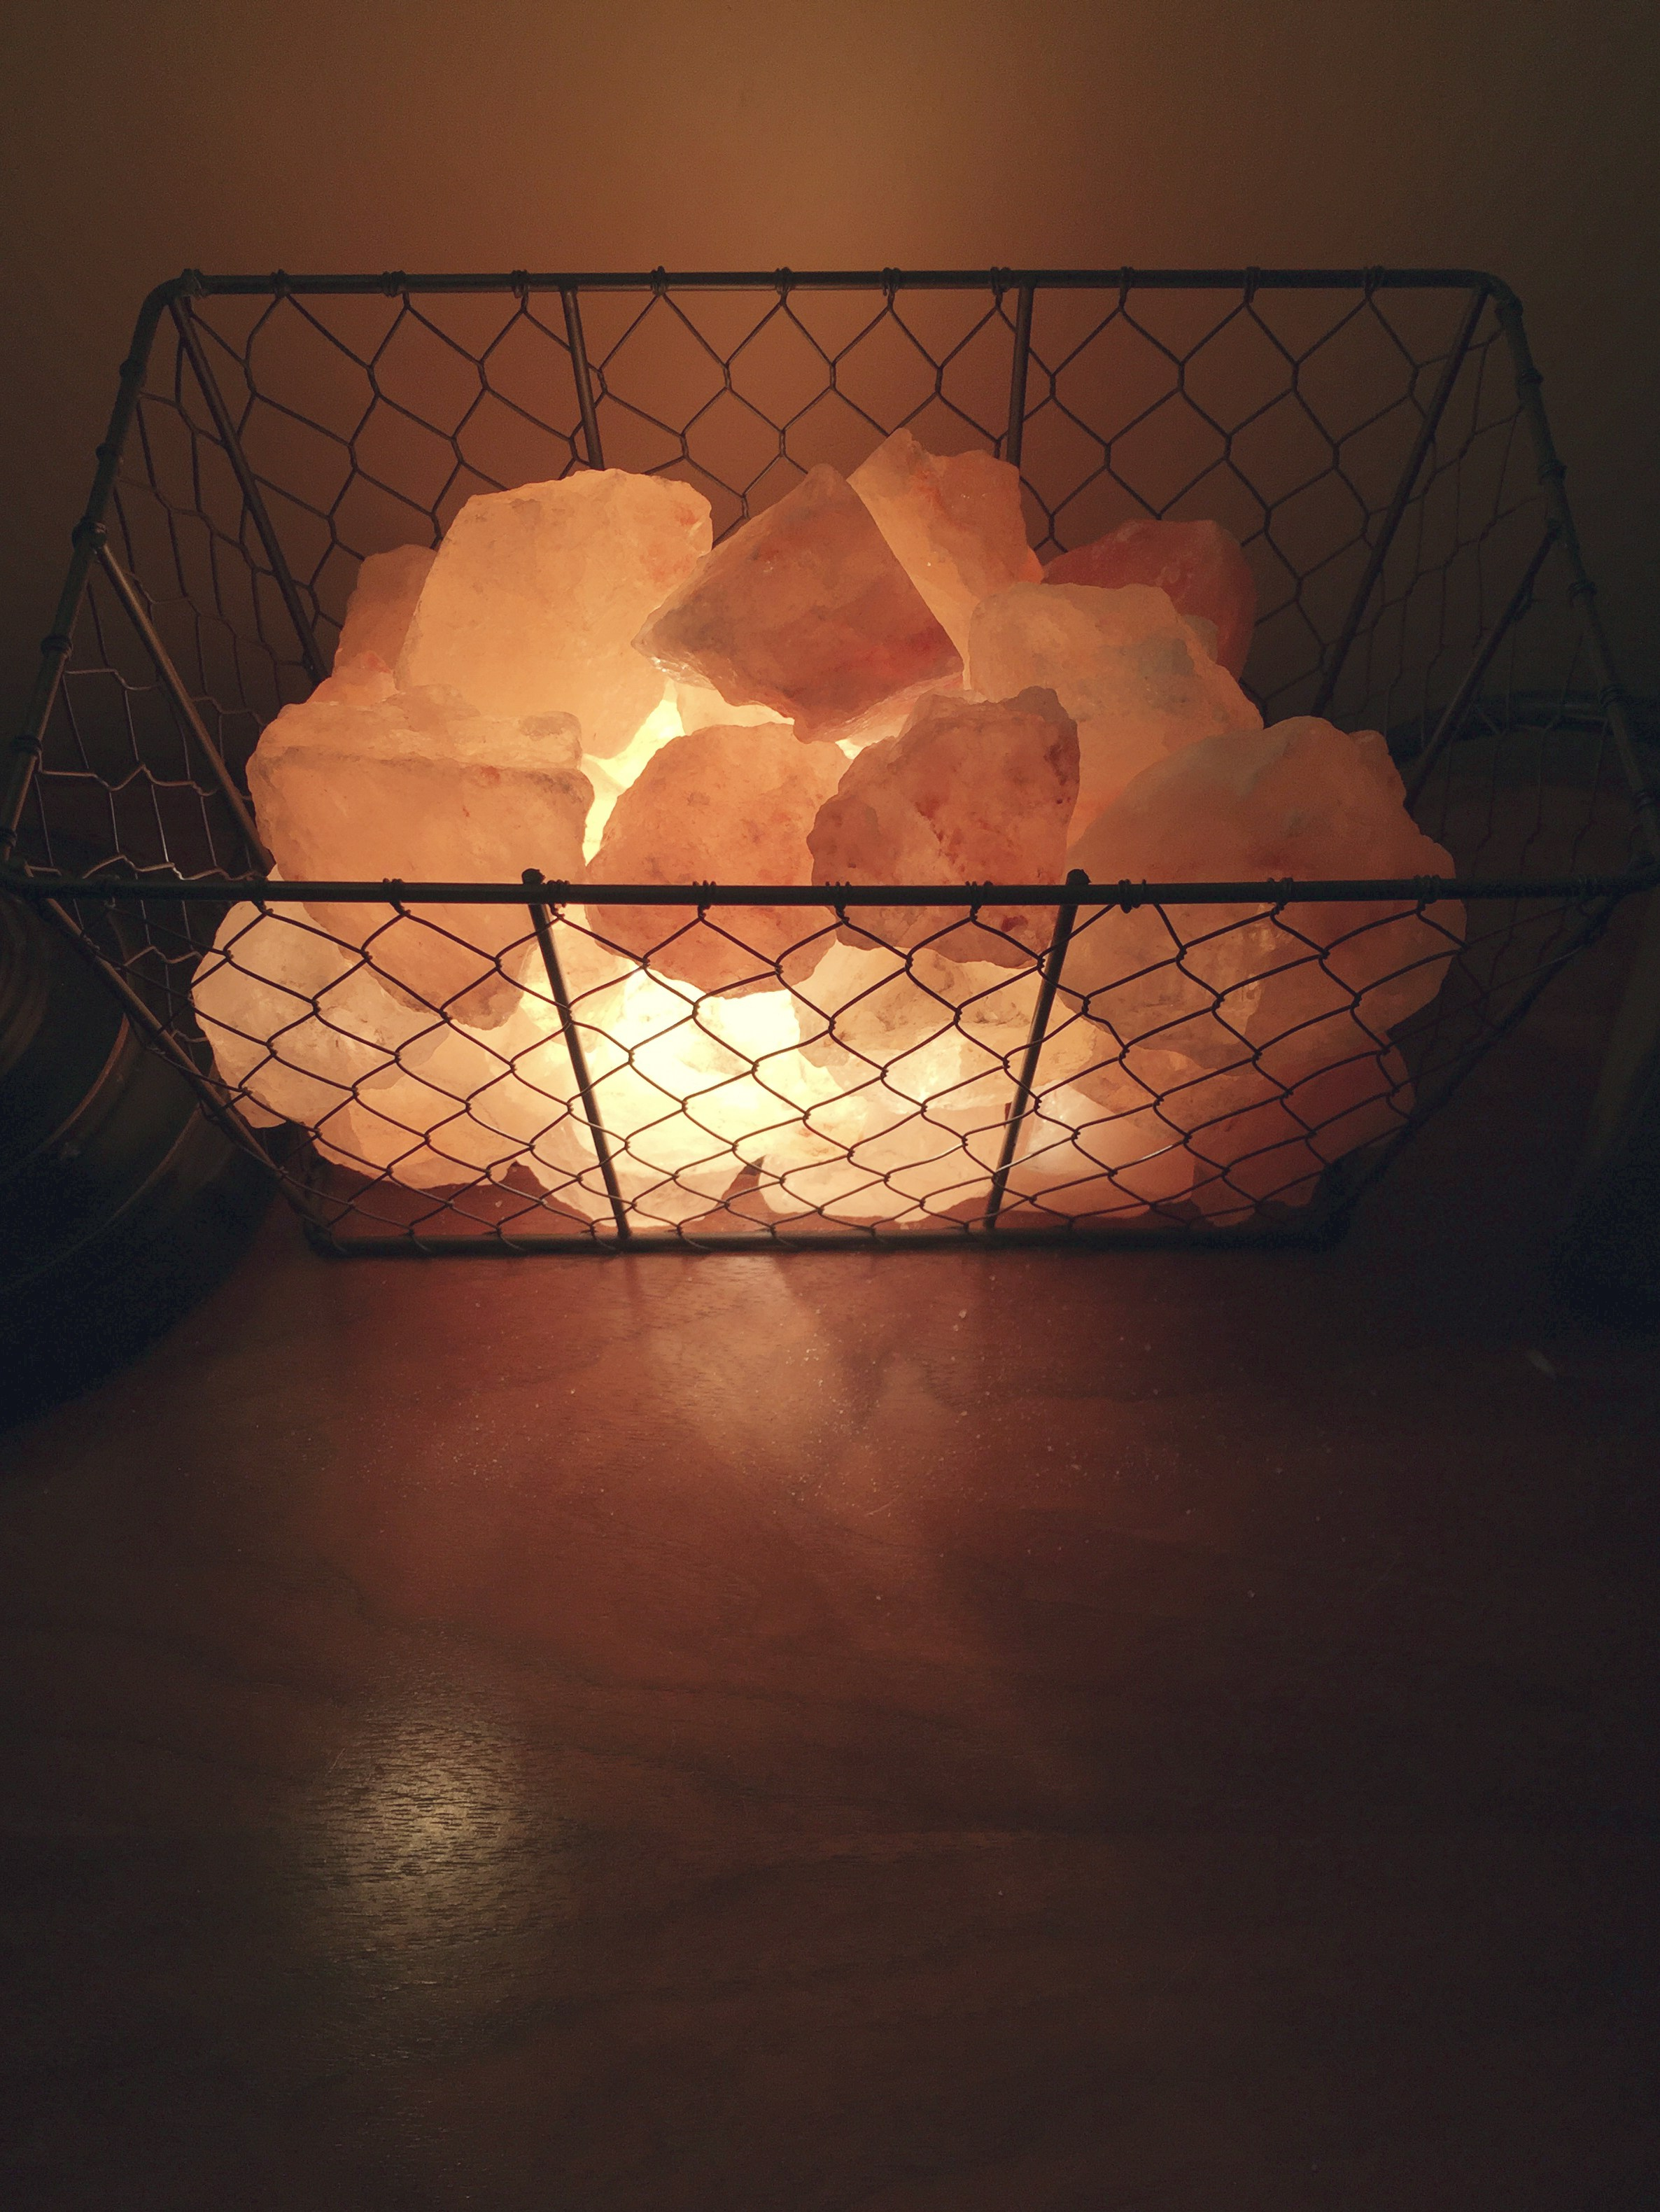 Himalayan Salt Lamps How To Use : Energetic Lights: Himalayan Salt Lamps as a Unique Decor Piece